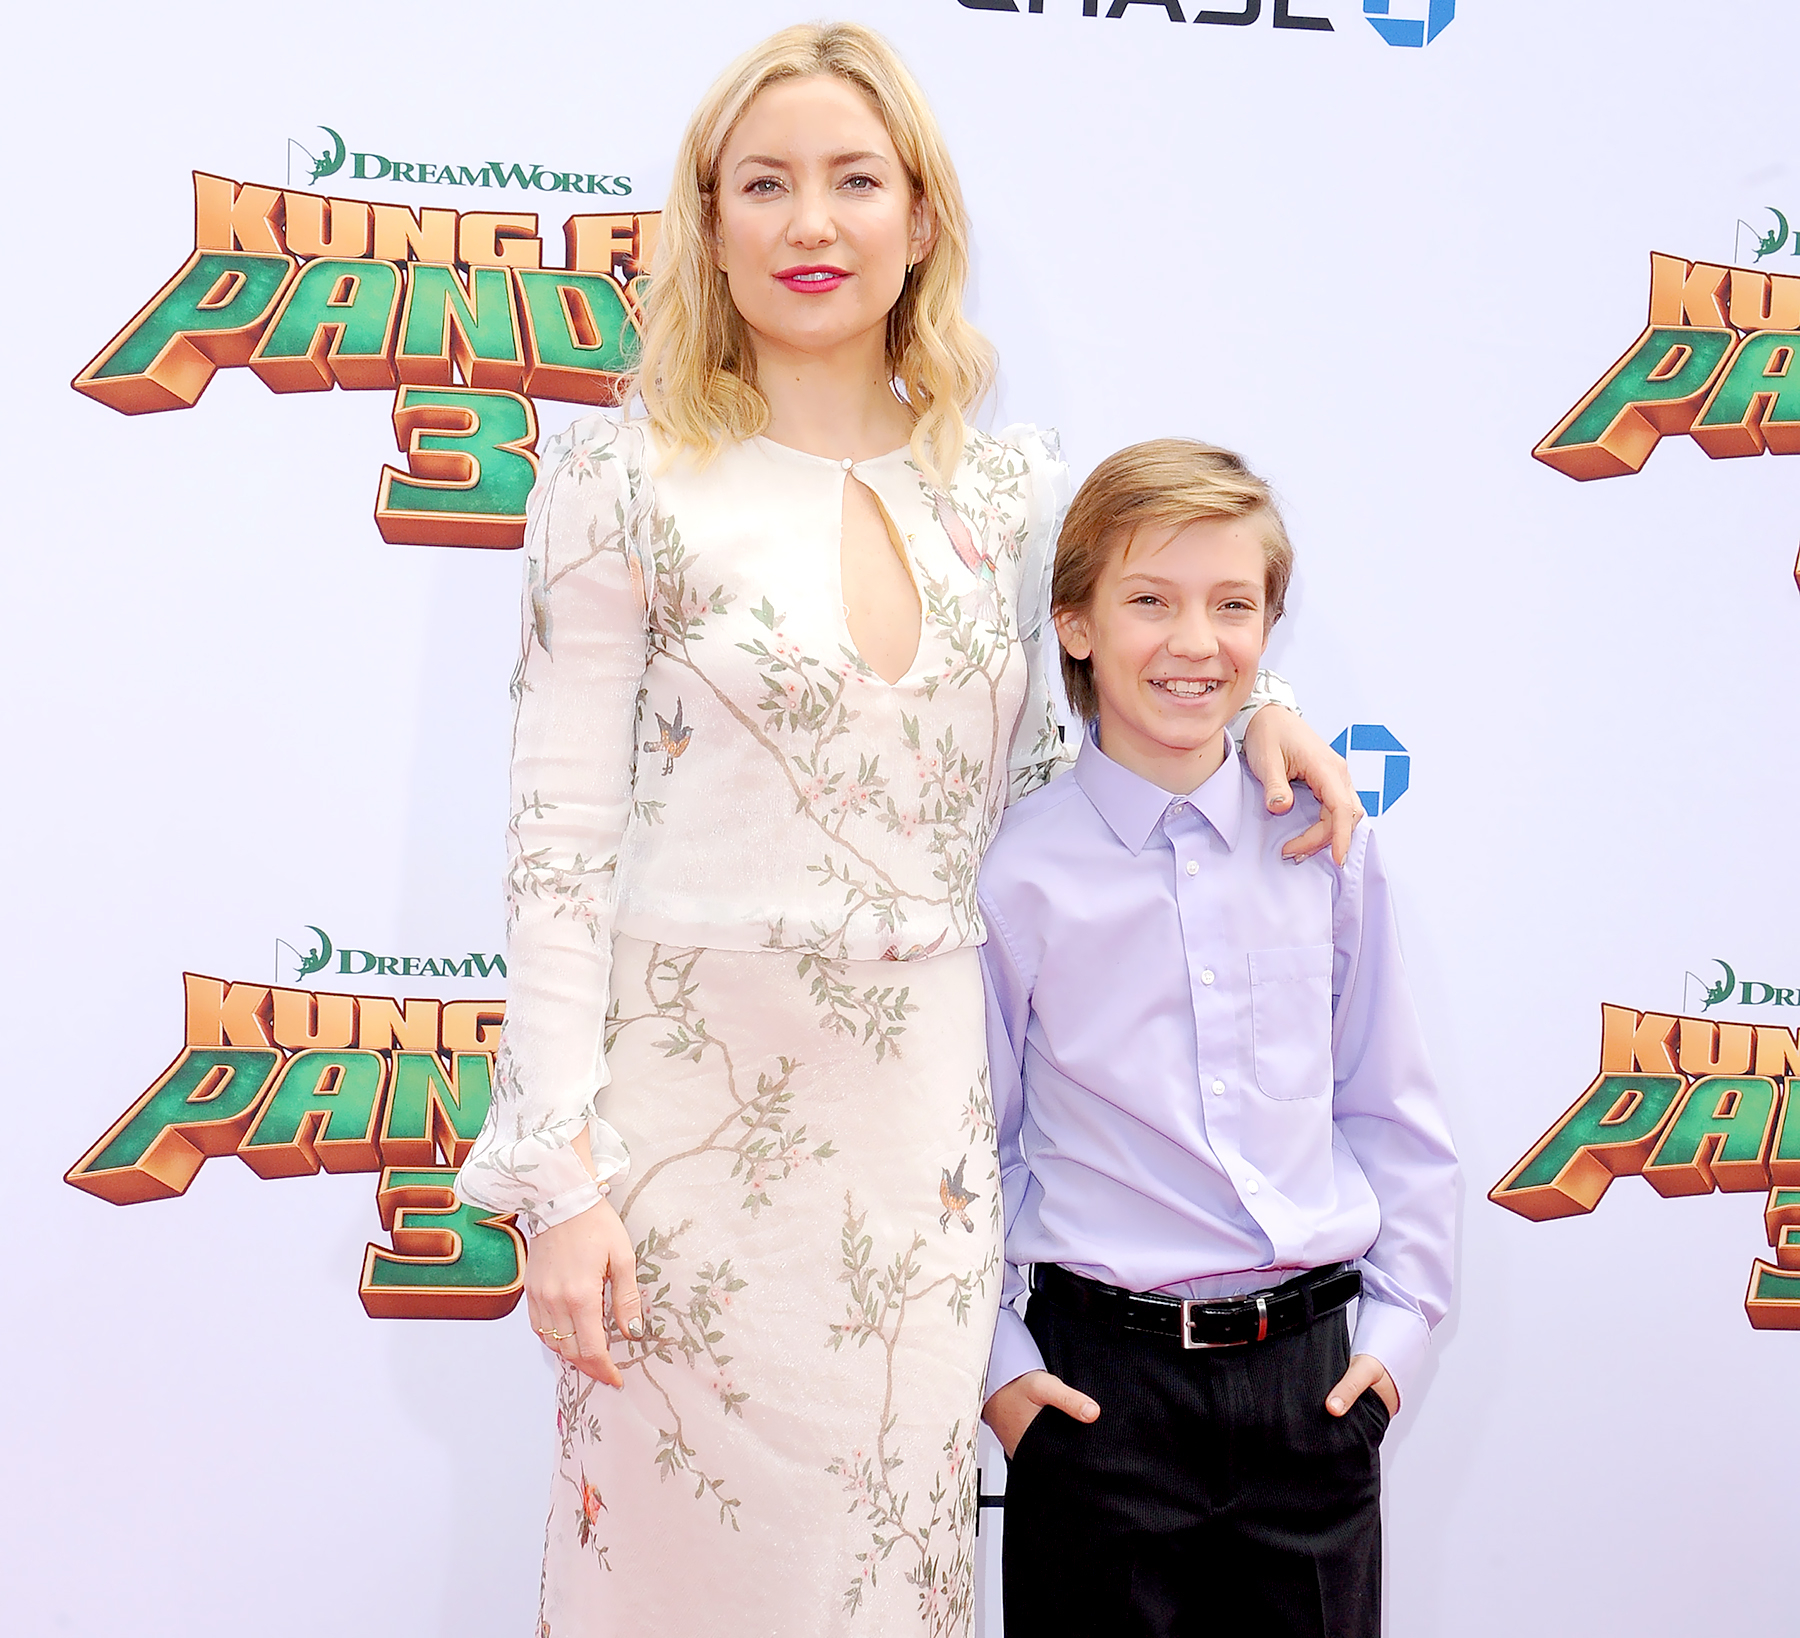 Kate Hudson and son Ryder Robinson arrive at the premiere of 20th Century Fox's 'Kung Fu Panda 3' at TCL Chinese Theatre on January 16, 2016 in Hollywood, California.